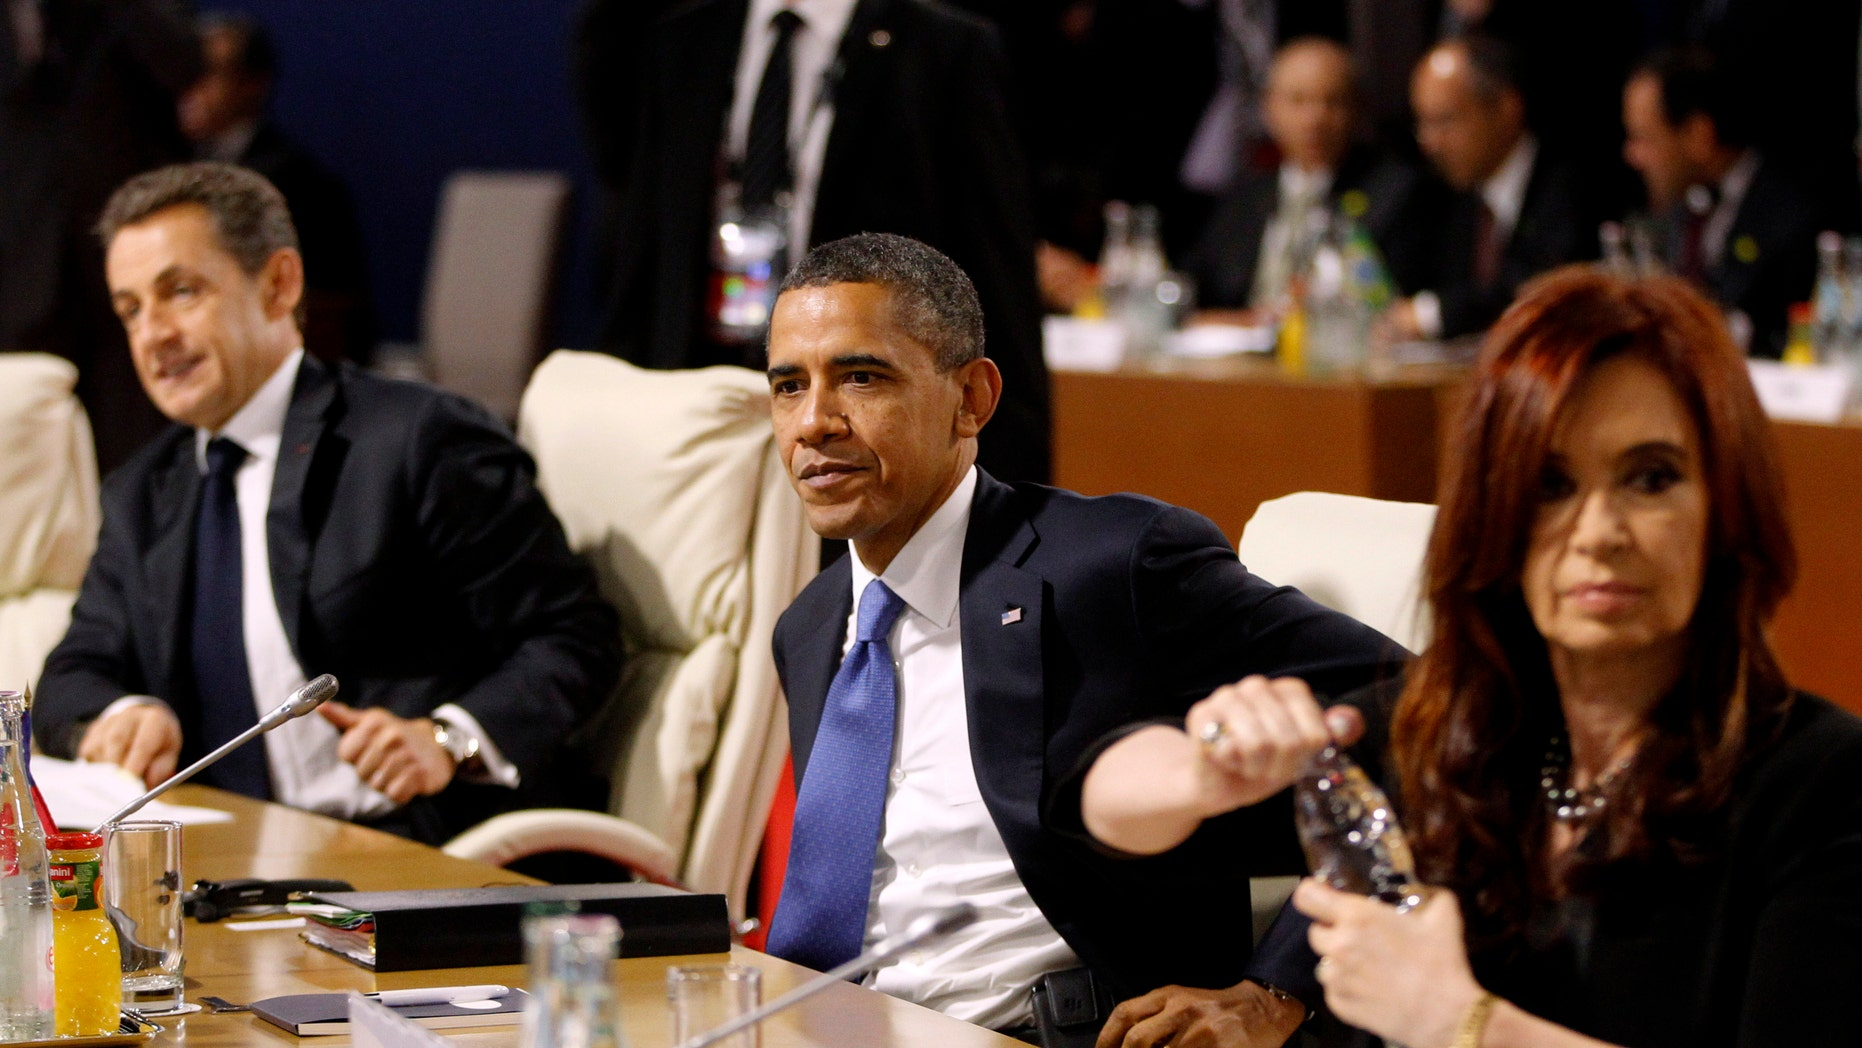 President Barack Obama, center, flanked by French President Nicolas Sarkozy, left, and Argentina President Cristina Fernandez is seen during a working lunch at the G20 Summit in Cannes, France, Thursday, Nov. 3, 2011. (AP Photo/Charles Dharapak)